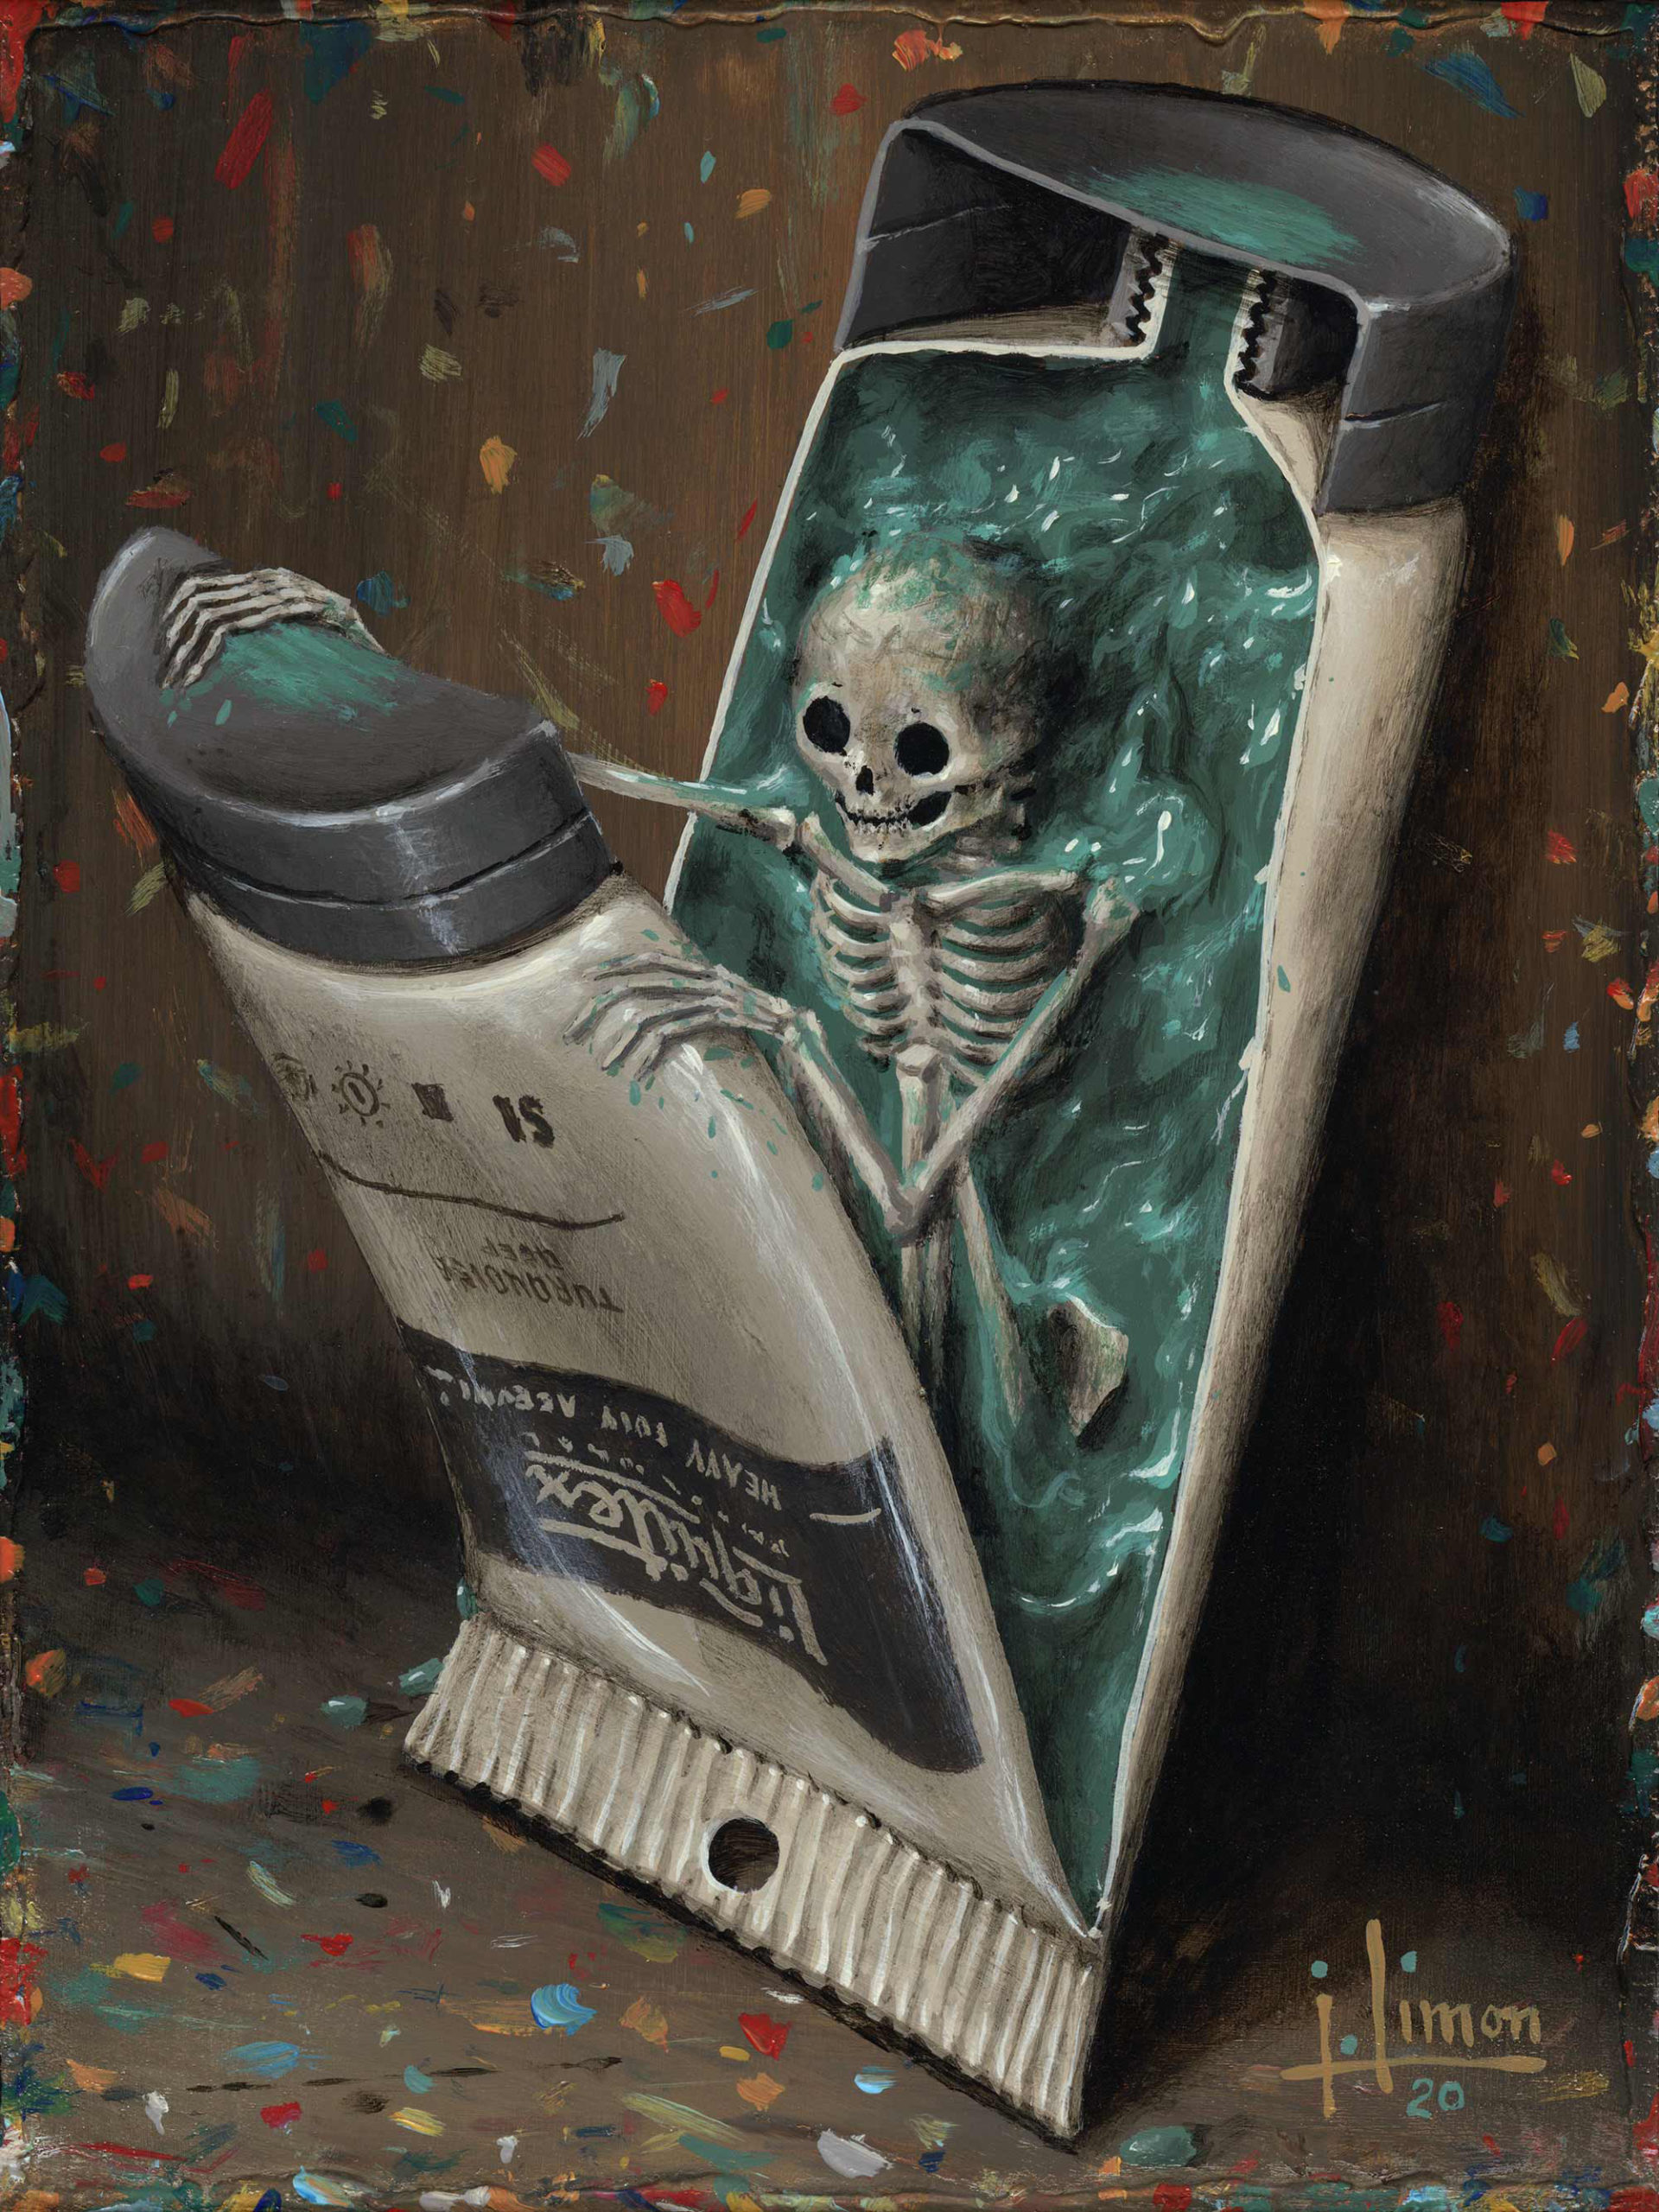 Otherworldly Paintings Trap Skeletons in Perpetually Bizarre and Eerie Situations